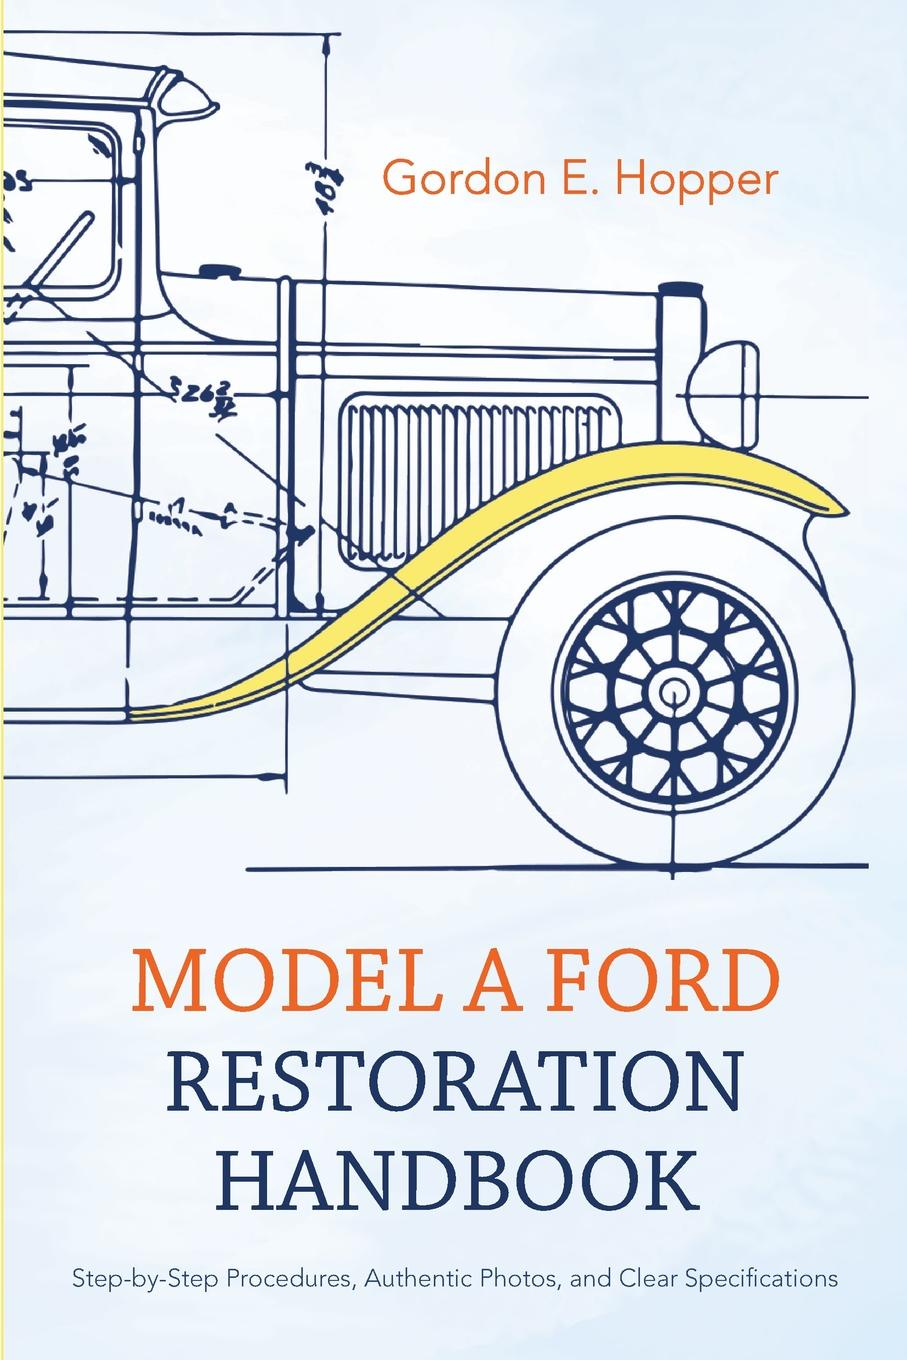 Gordon E. Hopper Model A Ford Restoration Handbook велосипед трехколёсный lexus trike original rt next deluxe высокая спинка new design 2014 малиновый